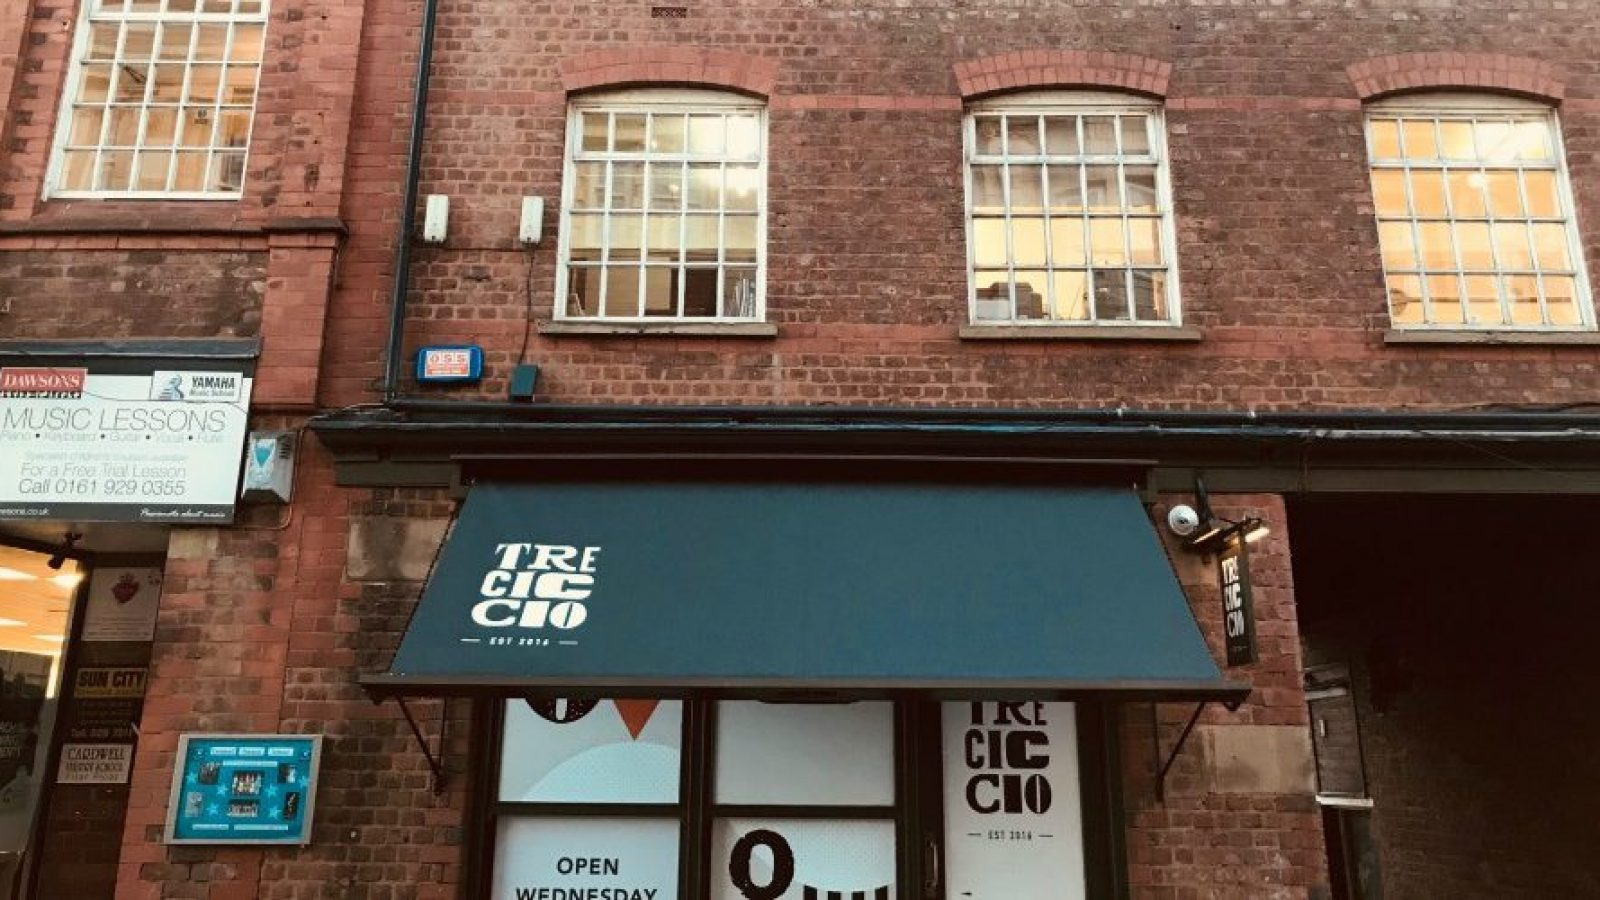 Tre Ciccio is located on Moss Lane in Altrincham town centre